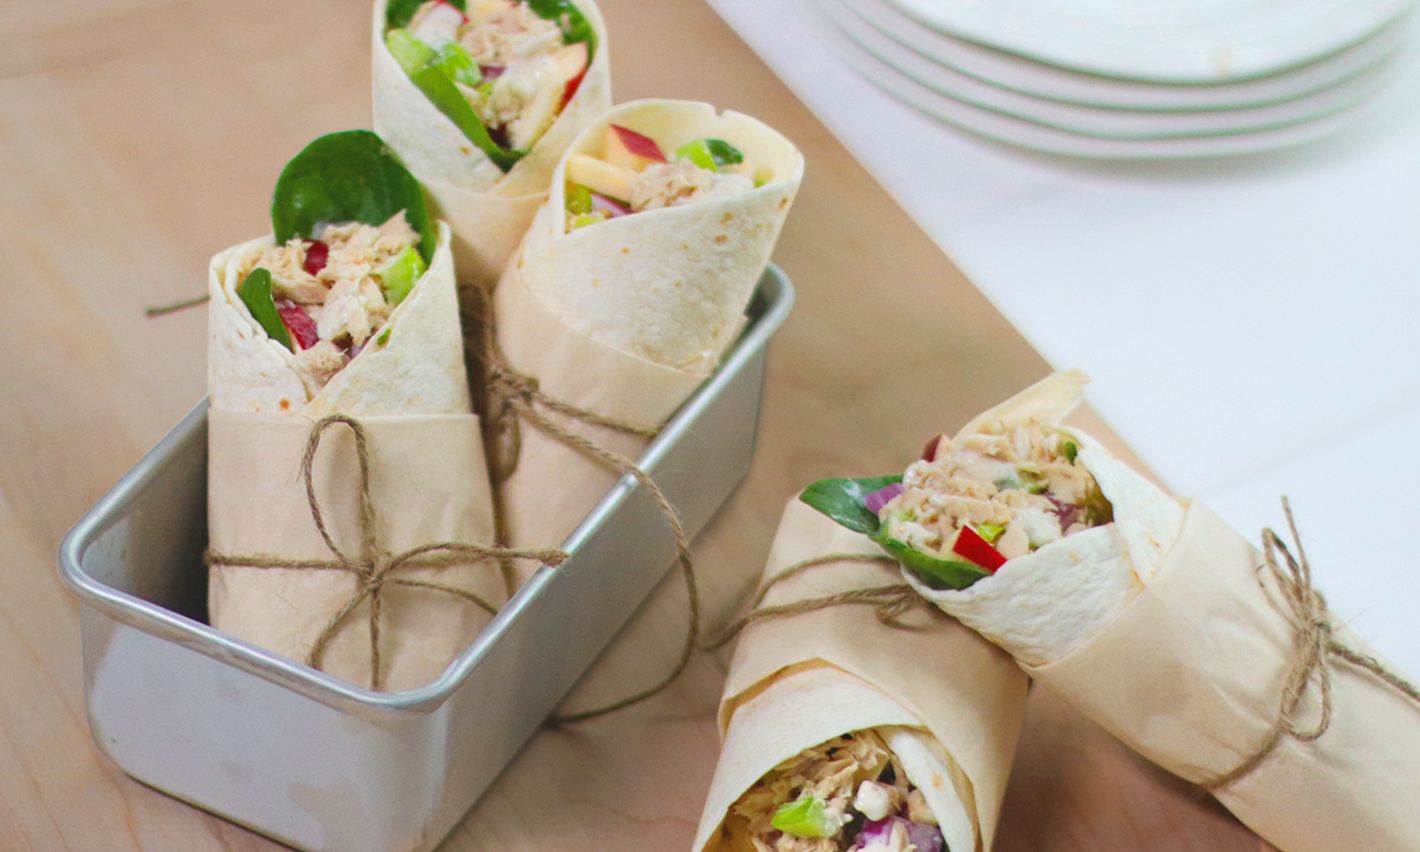 West Coast Tuna Wrap